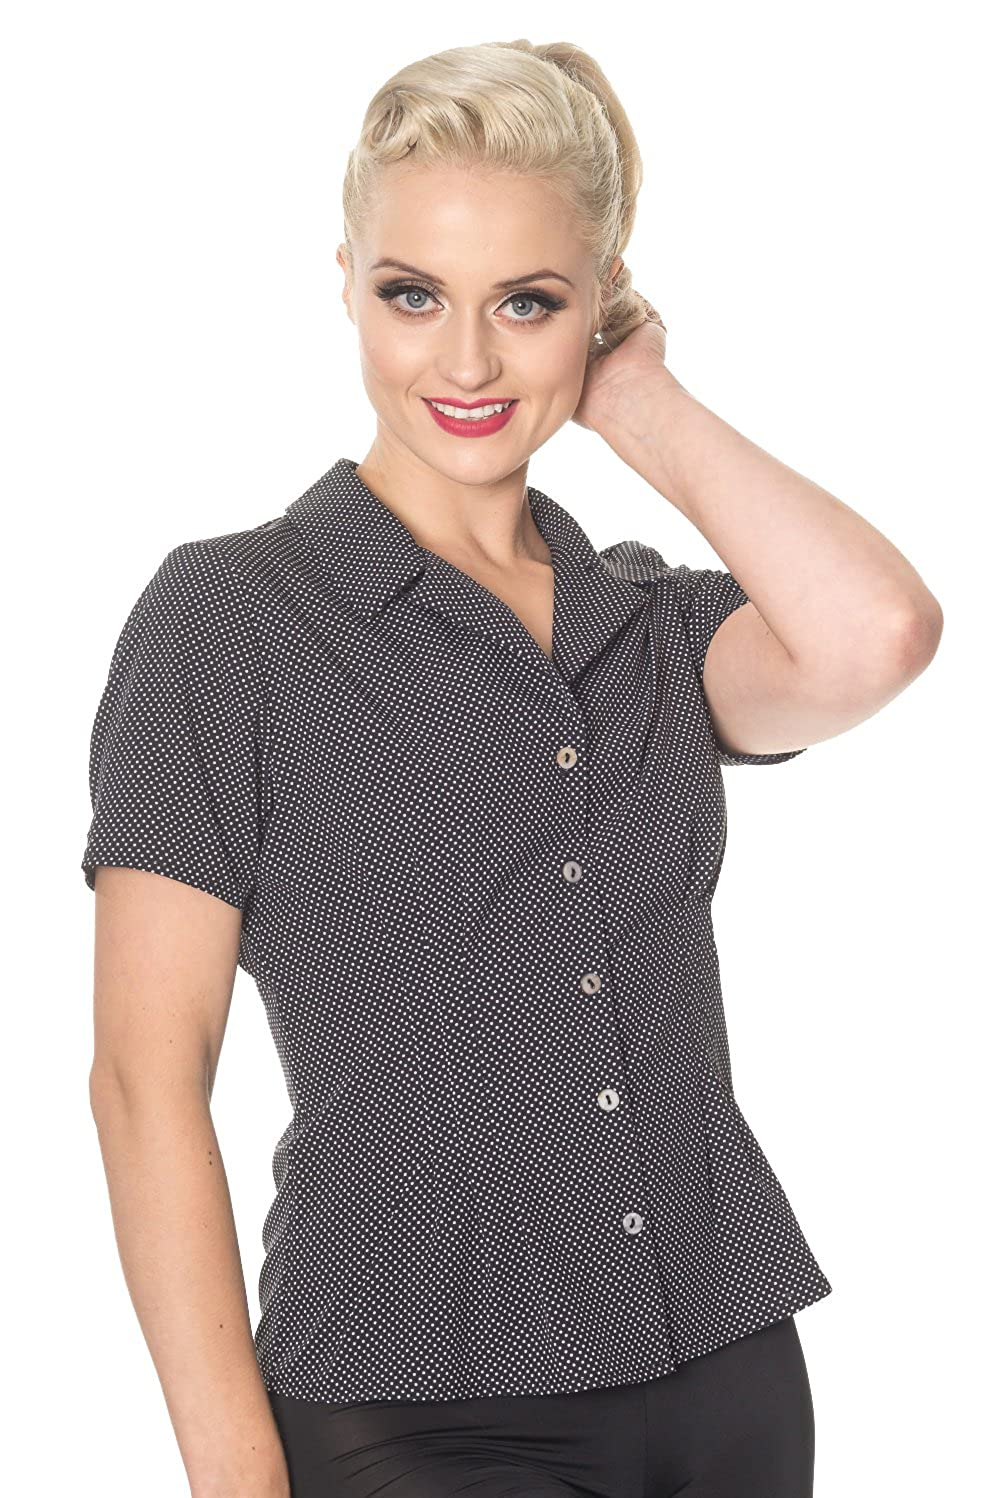 1940s Blouses and Tops Banned Lou Lou Womens Vintage Retro Blouse - 3 Colours $28.95 AT vintagedancer.com